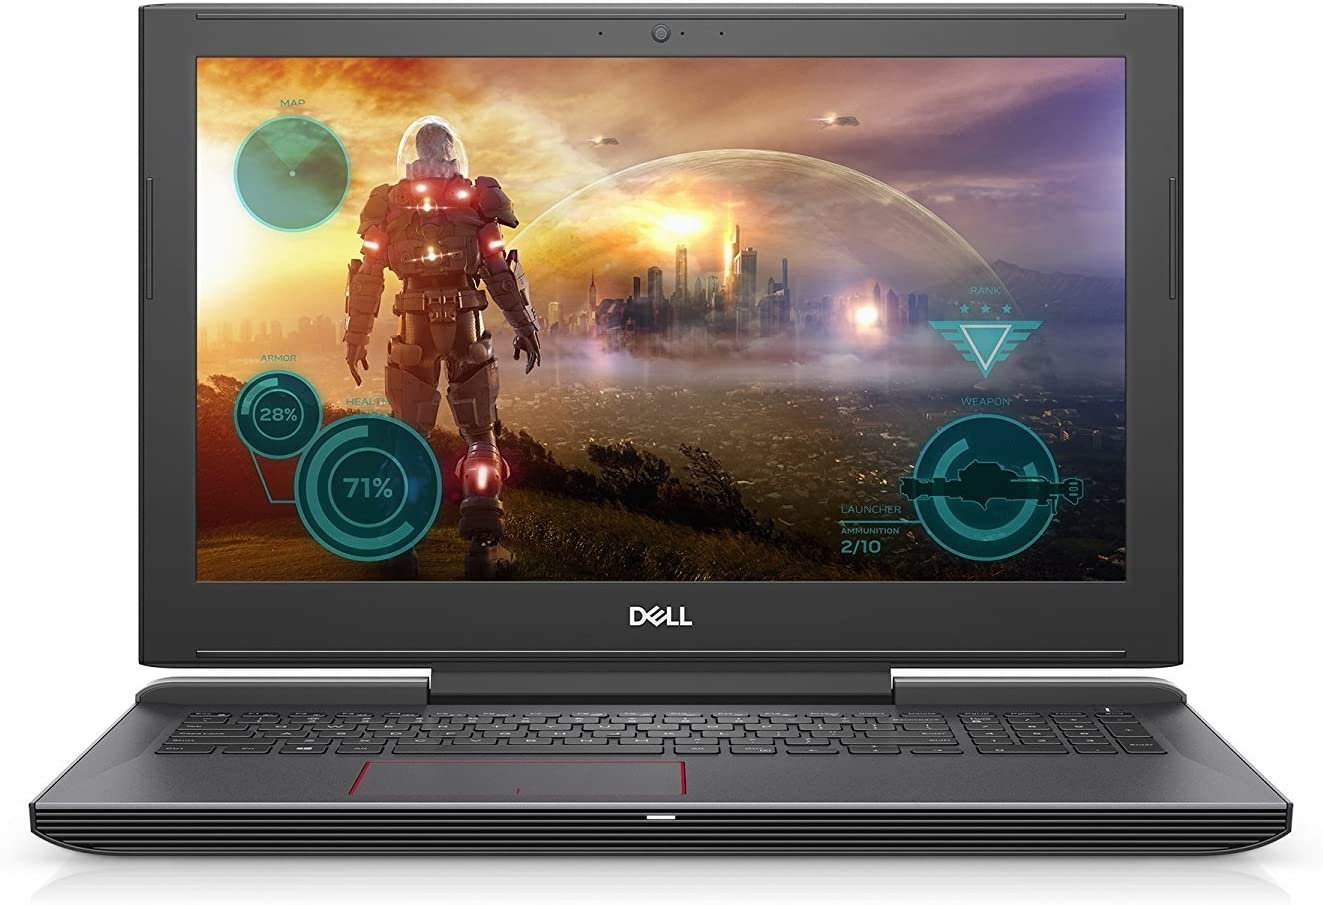 2018 Flagship Dell Inspiron 15 Gaming Edition 7577 Laptop Computer (15.6 Inch FHD Display, Intel Core i5-7300HQ 2.5GHz, 16GB RAM, 256GB SSD + 1TB HDD, NVIDIA GTX 1060 6GB, Windows 10)